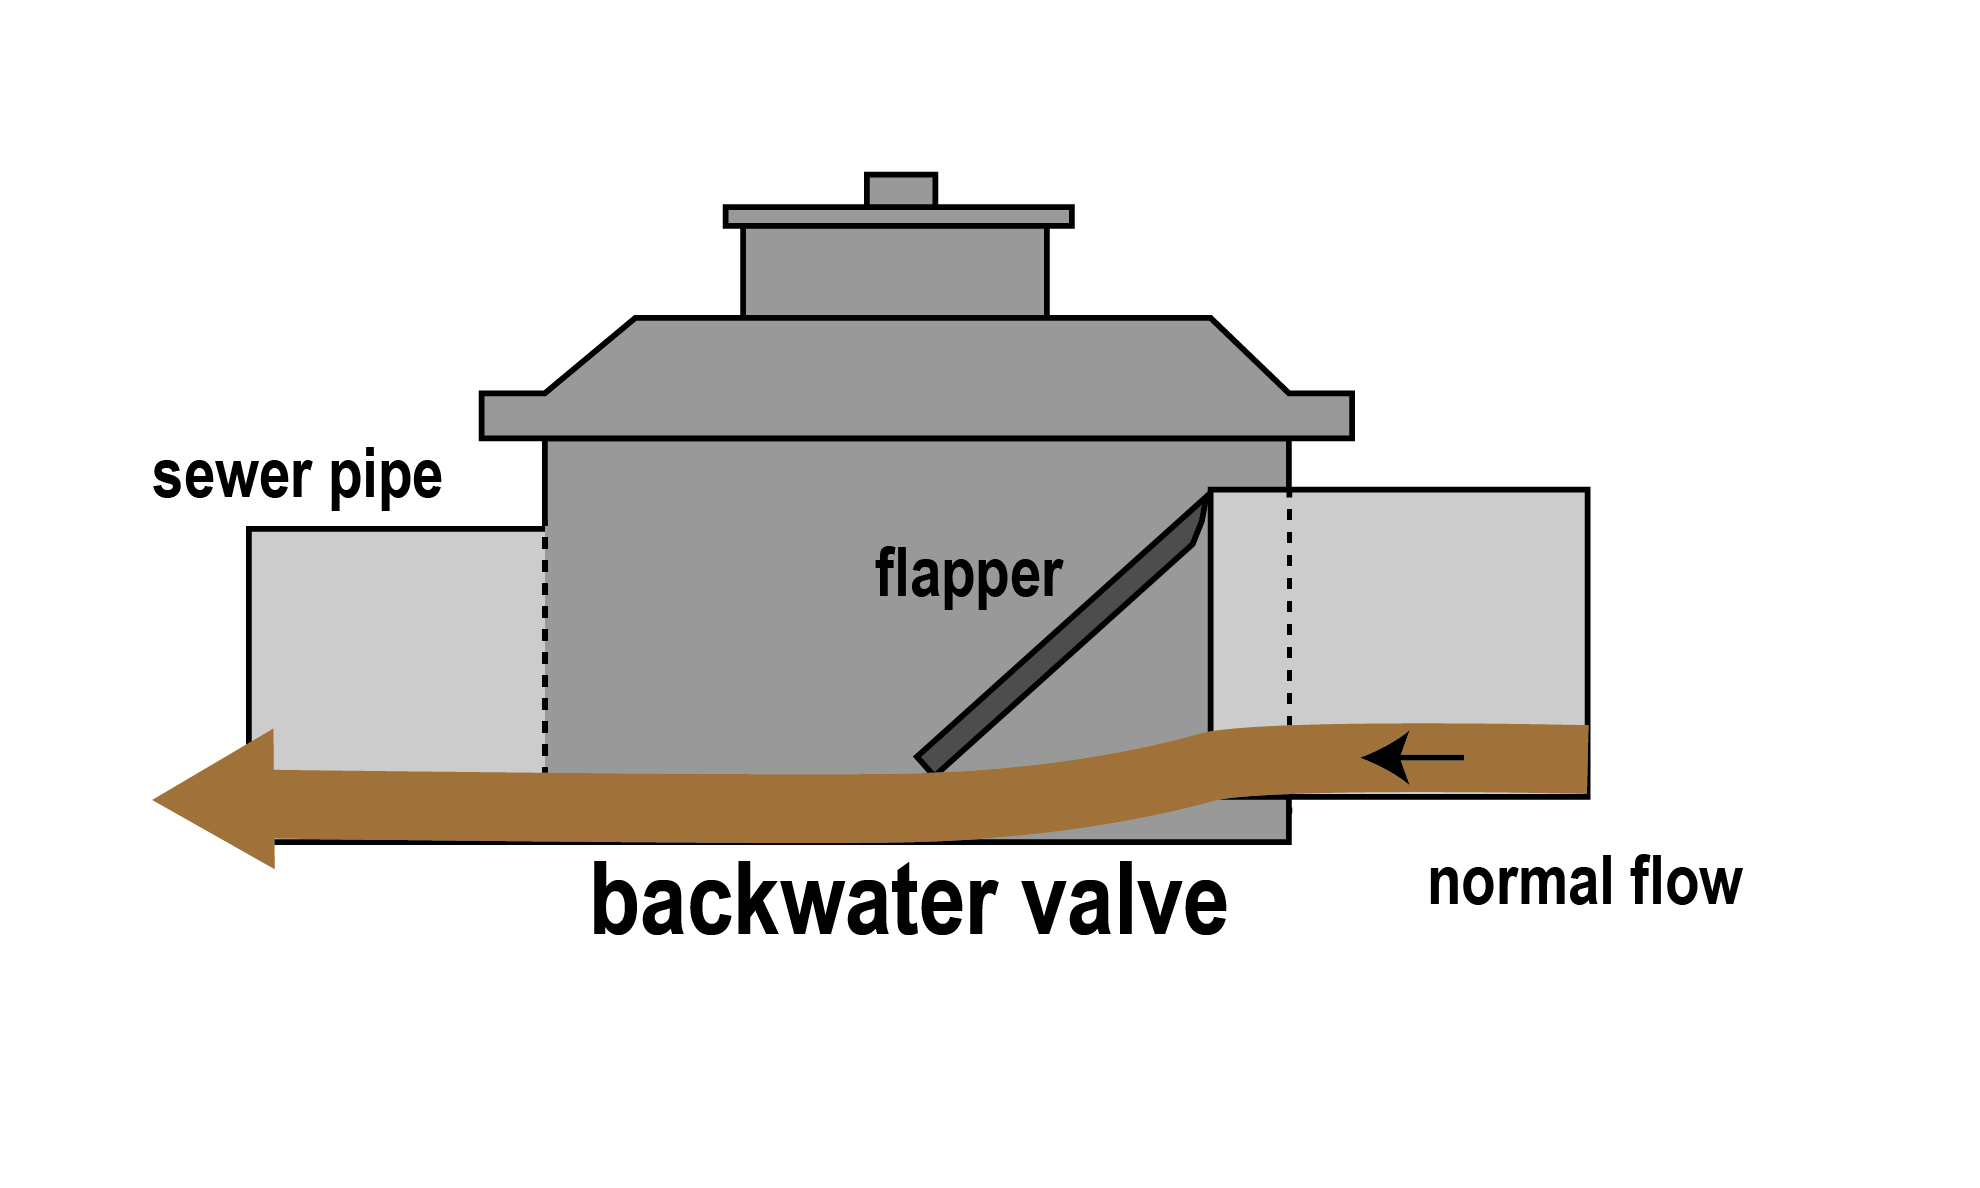 Diagram of an backwater valve showing normal flow.